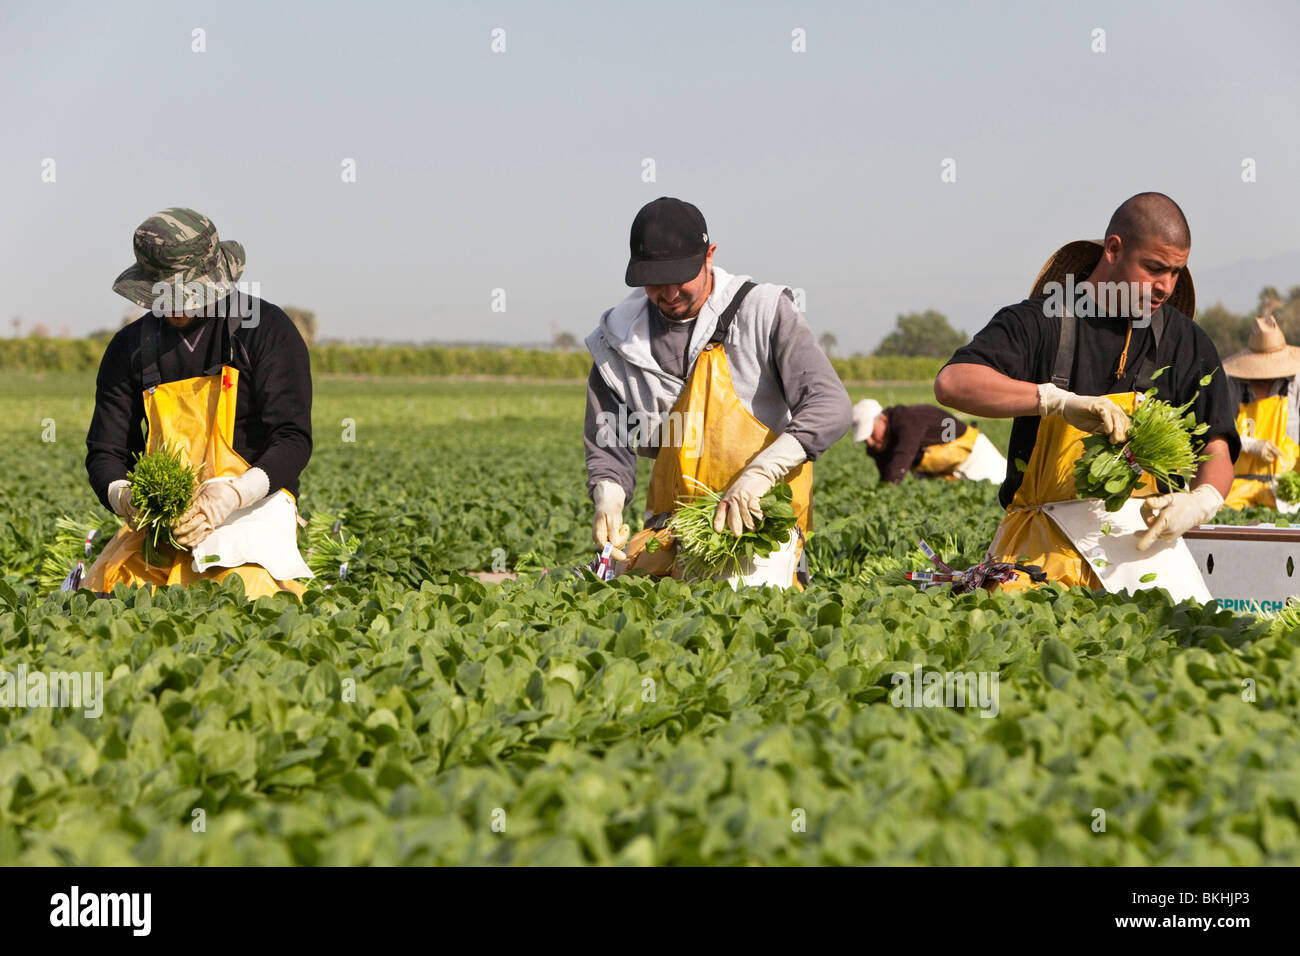 Spinach 'Spinacia oleracea', workers harvesting. - Stock Image